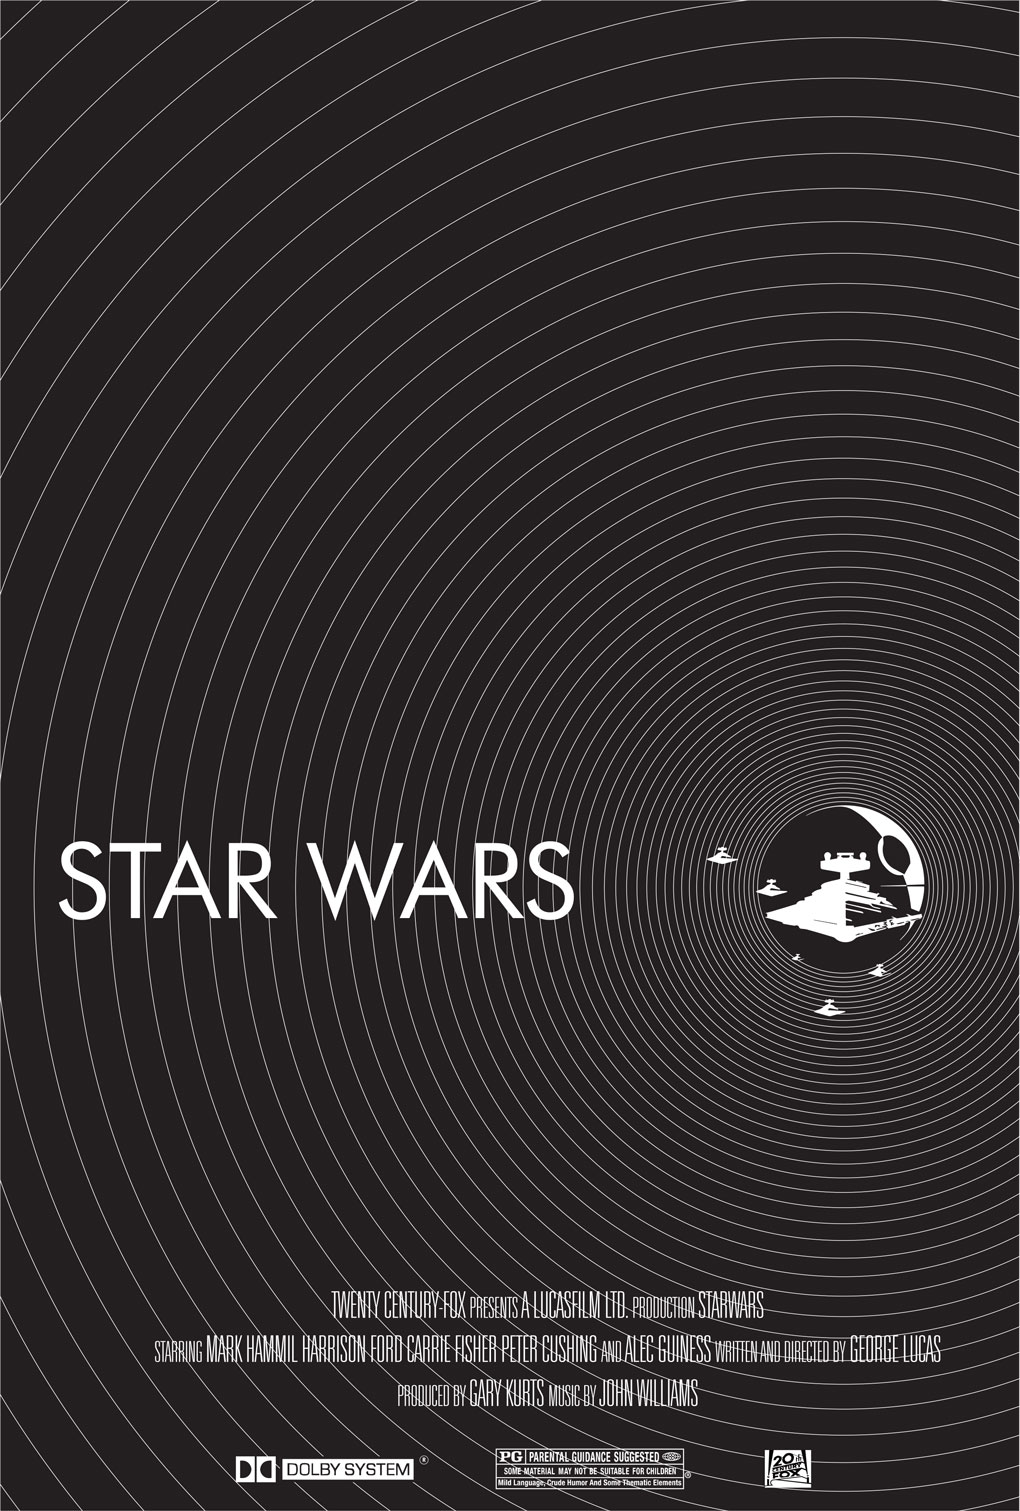 Star Wars   A New Hope poster by Diego López %tag